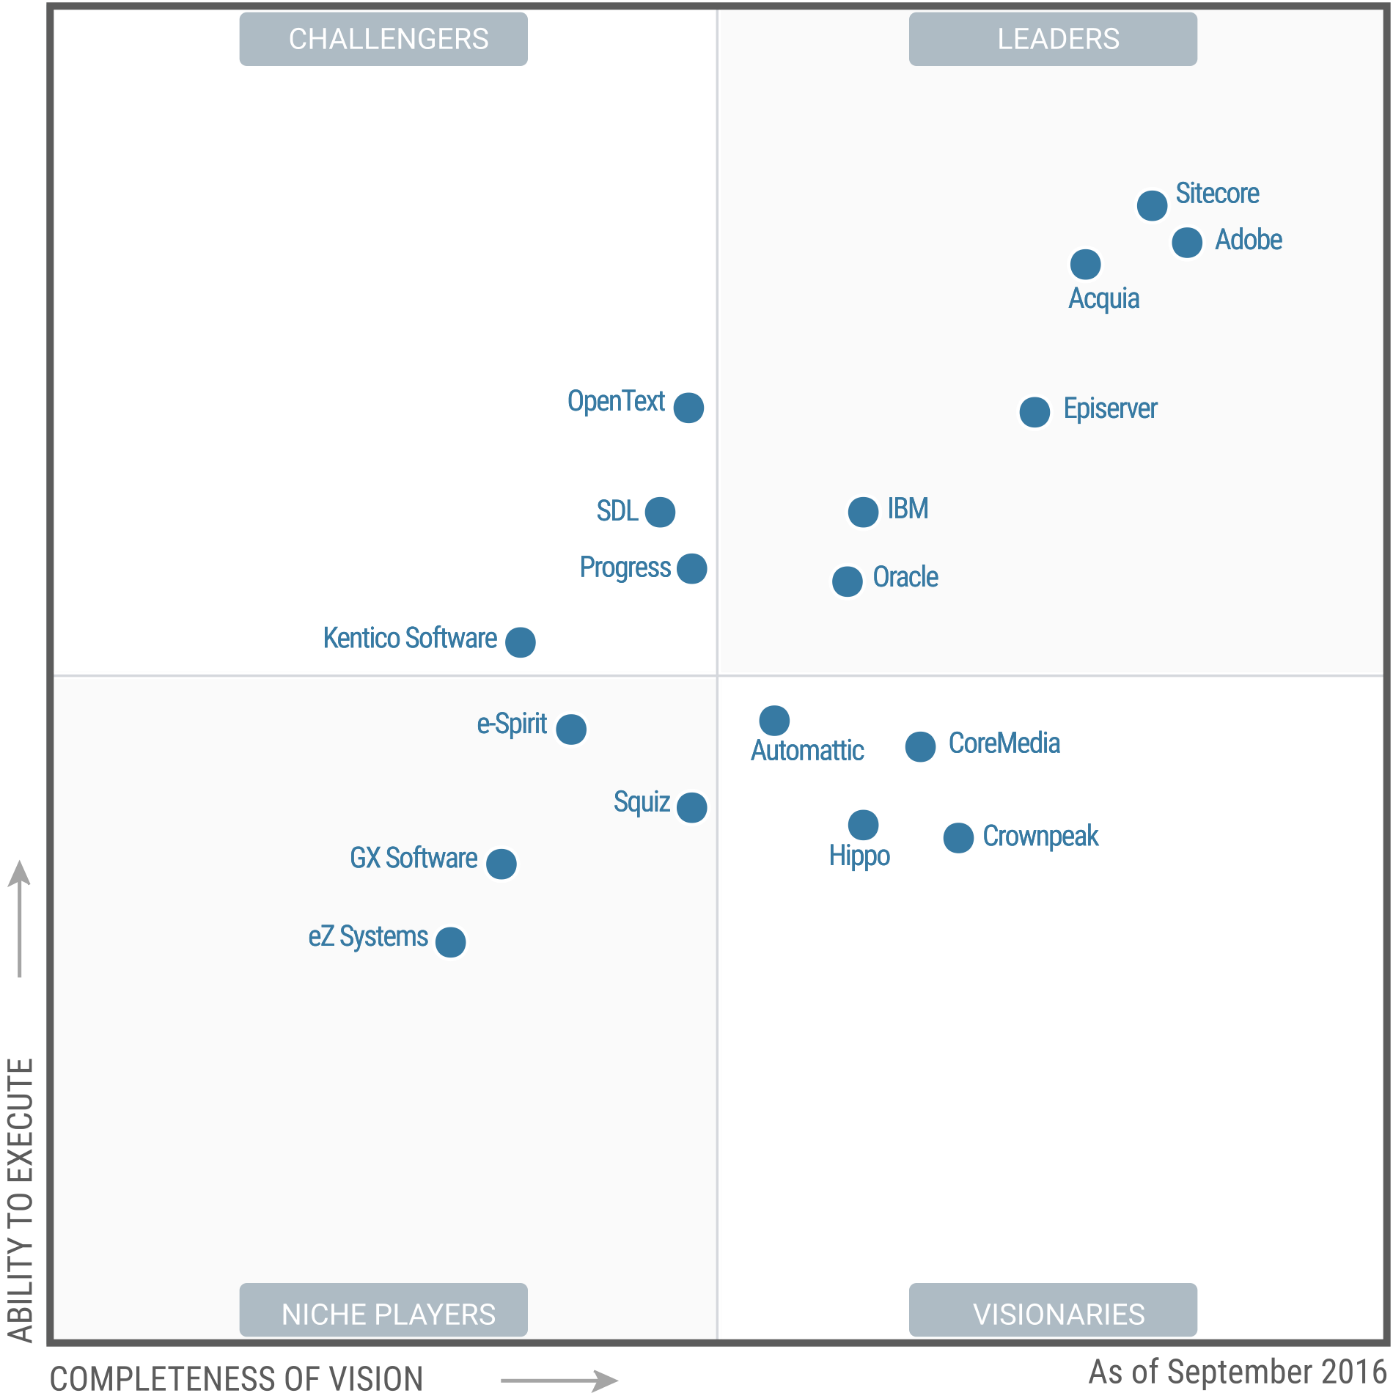 http://www.PROJECT-CONSULT.de/files/Gartner Magic Quadrant WCM 2016.pdf